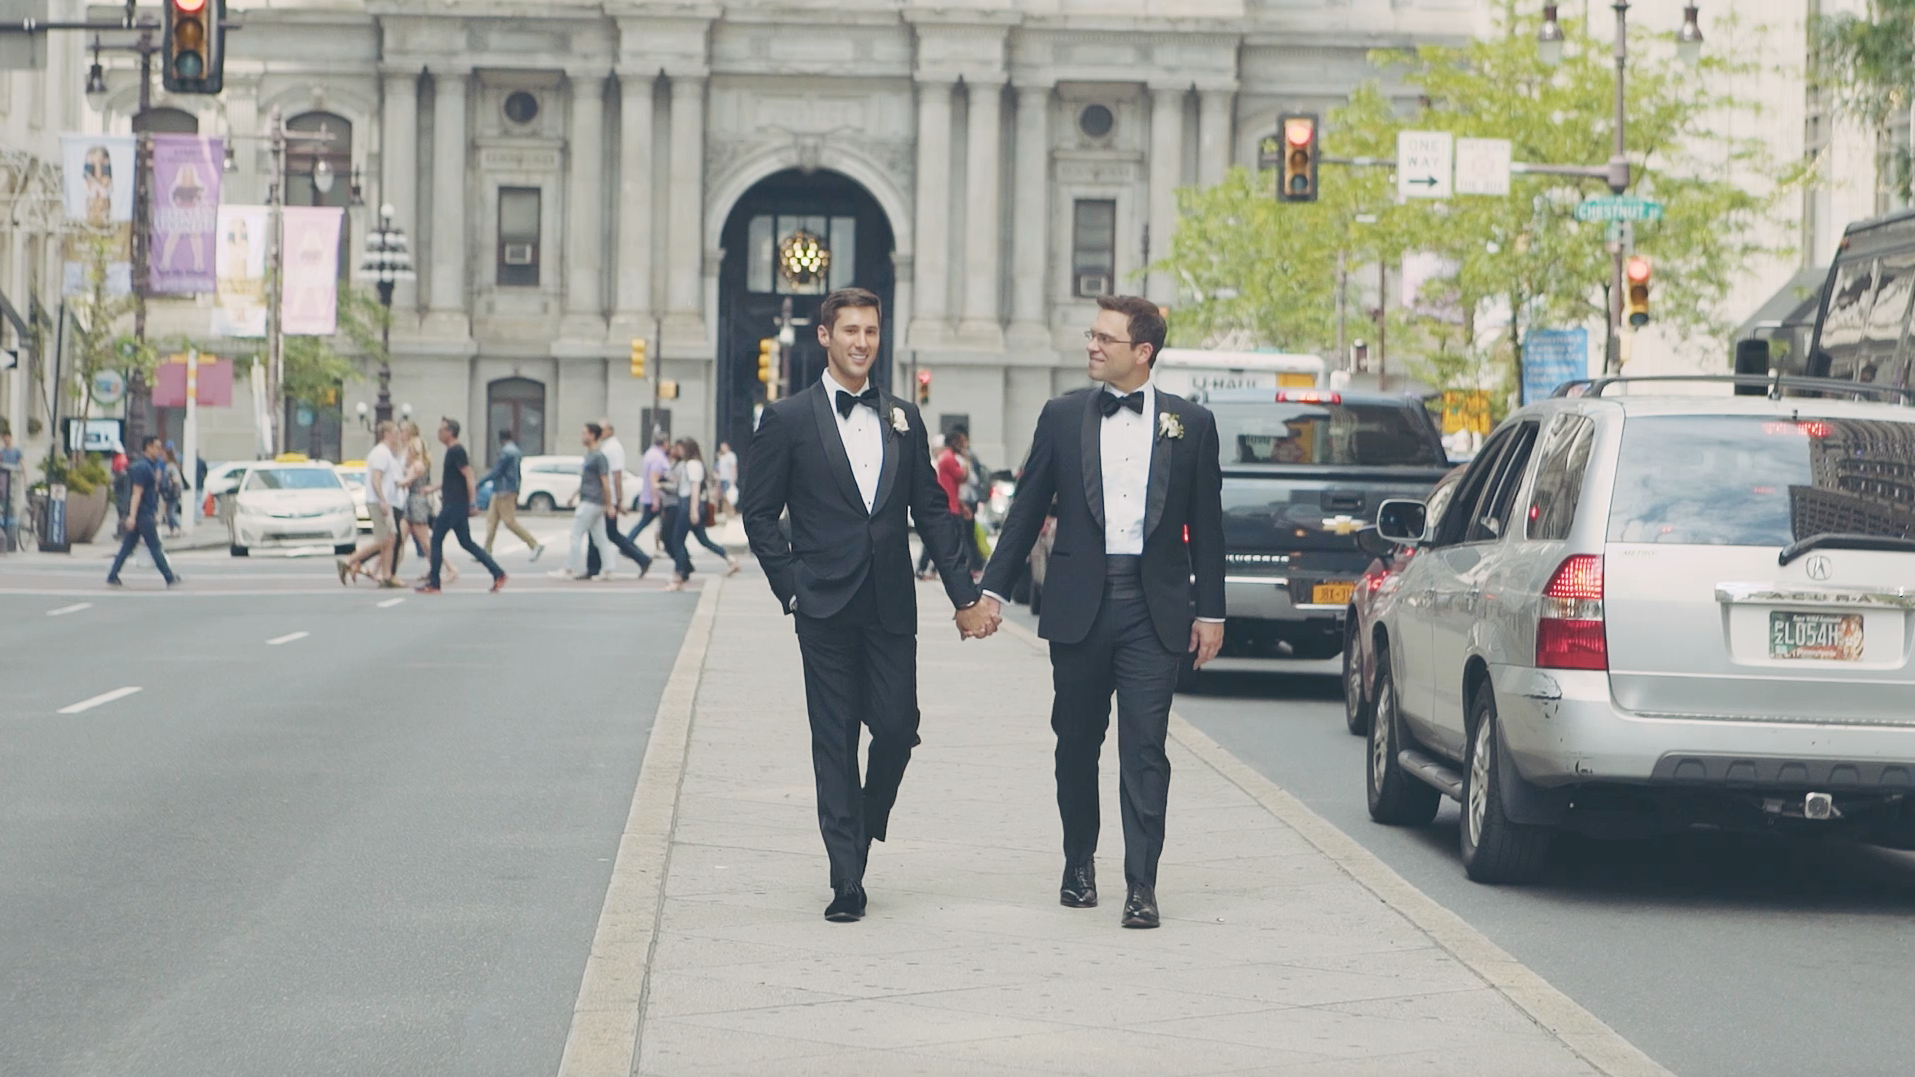 Joey + Andrew | Philadelphia, Pennsylvania | Water Works